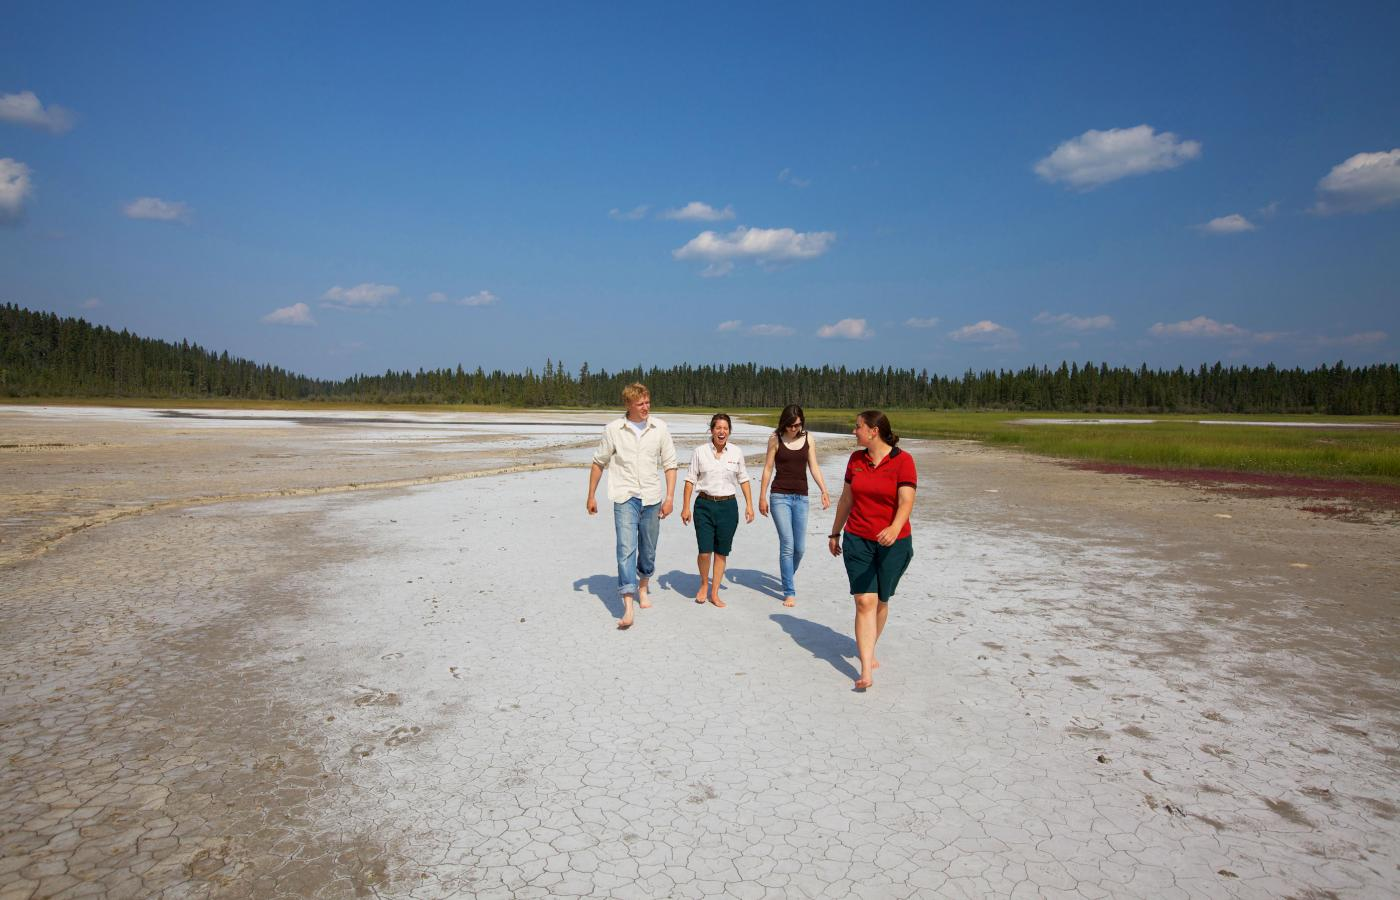 The surreal Salt Plains in Wood Buffalo National Park outside of Fort Smith, Northwest Territories, Canada